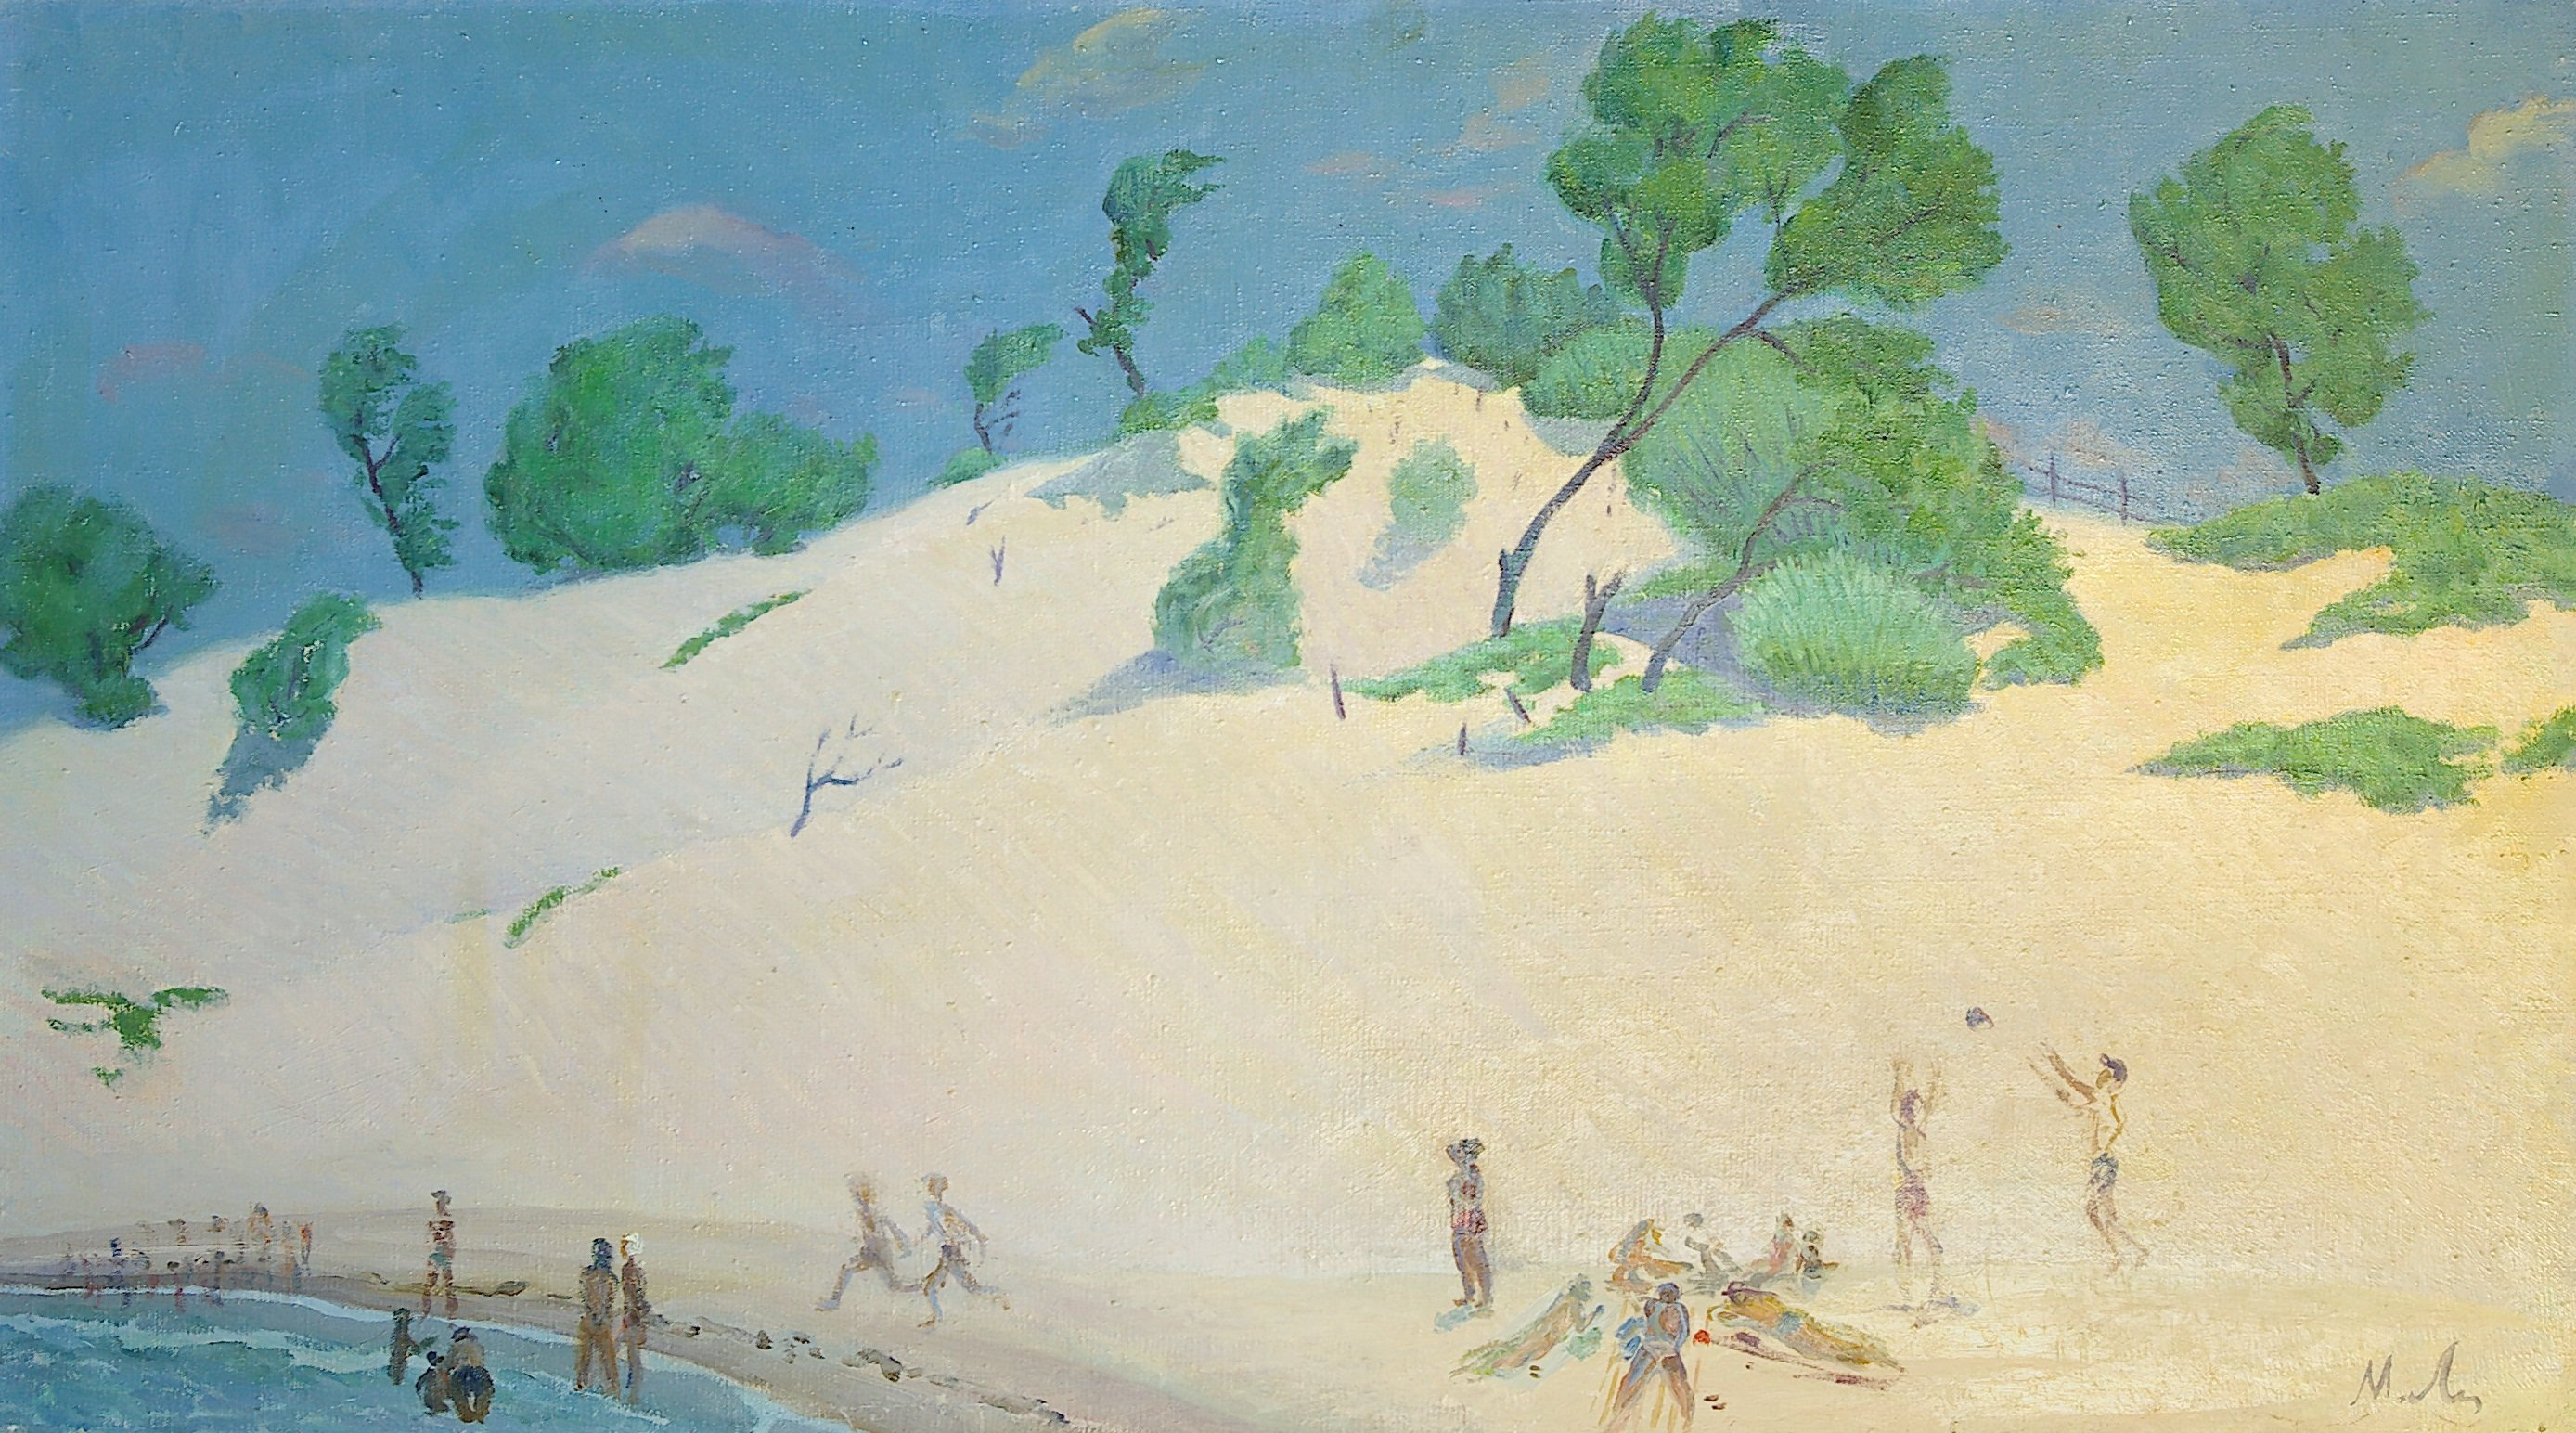 Moesey Li: 'Dunes', 1983 Oil Painting, Beach. Artist Description: realism, landscape, beach, people, sea, trees, dunes...